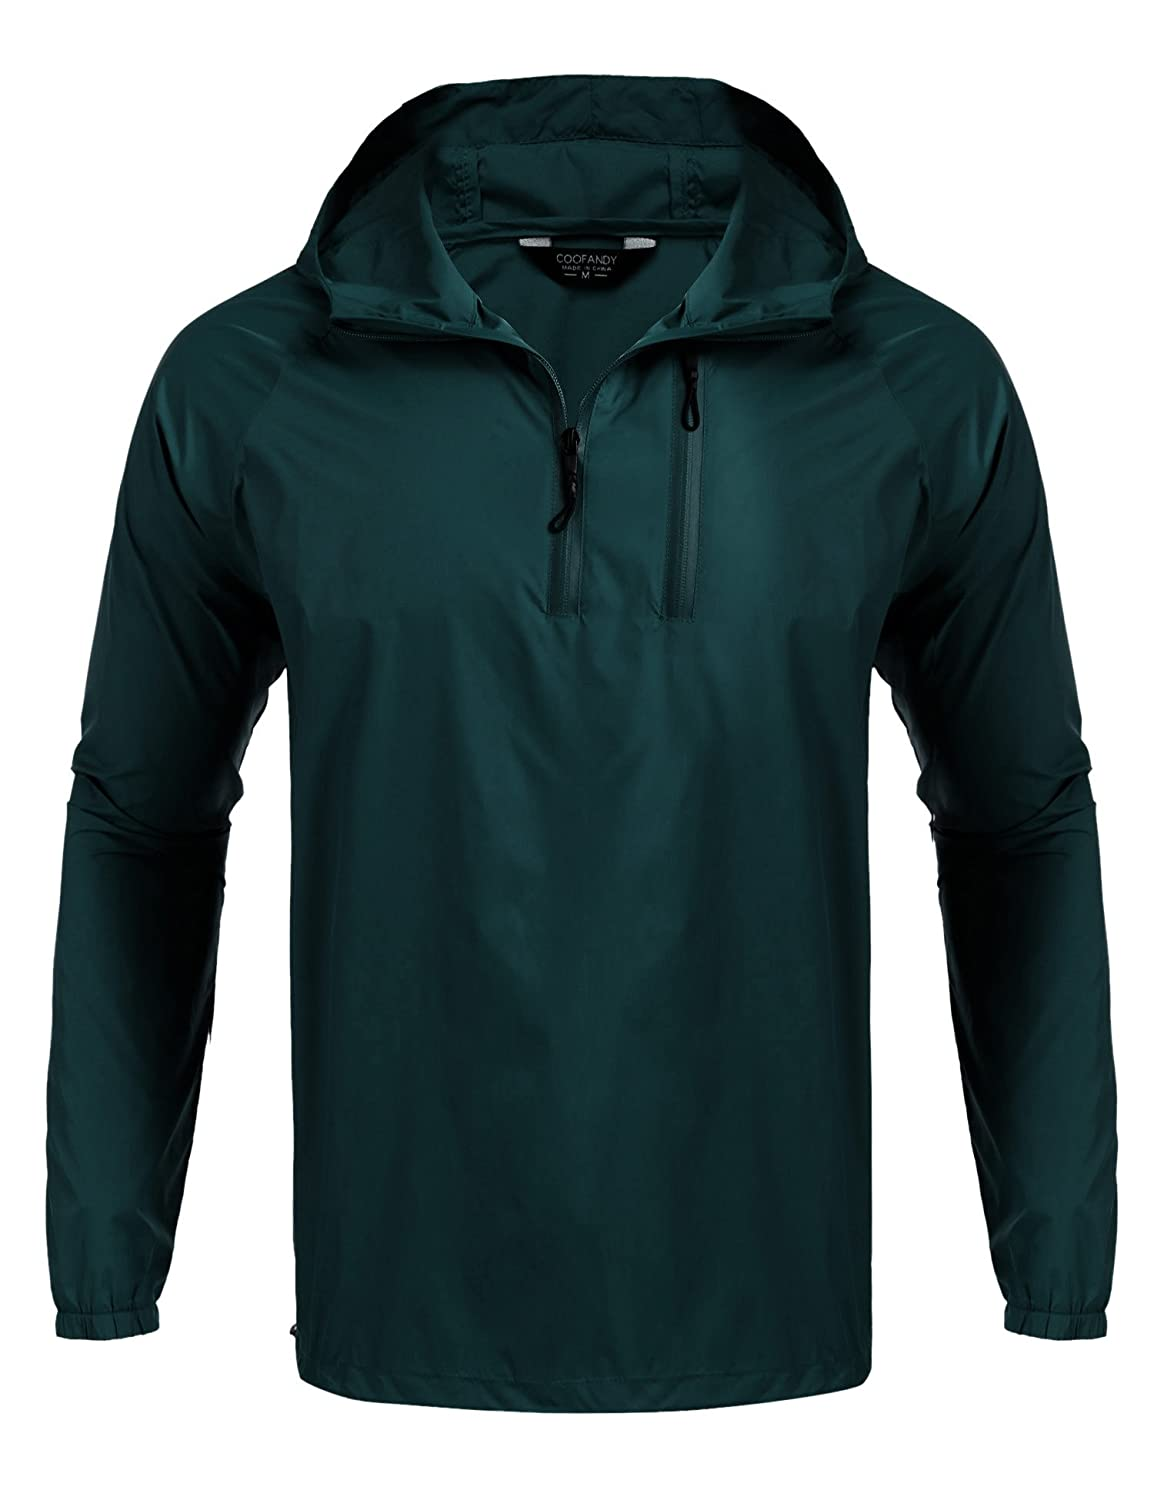 8bfc6e3b6cbb5 High quality special waterproof and windproof fabric offers a breathable  and comfortable wear experience in any kinds of weather condition